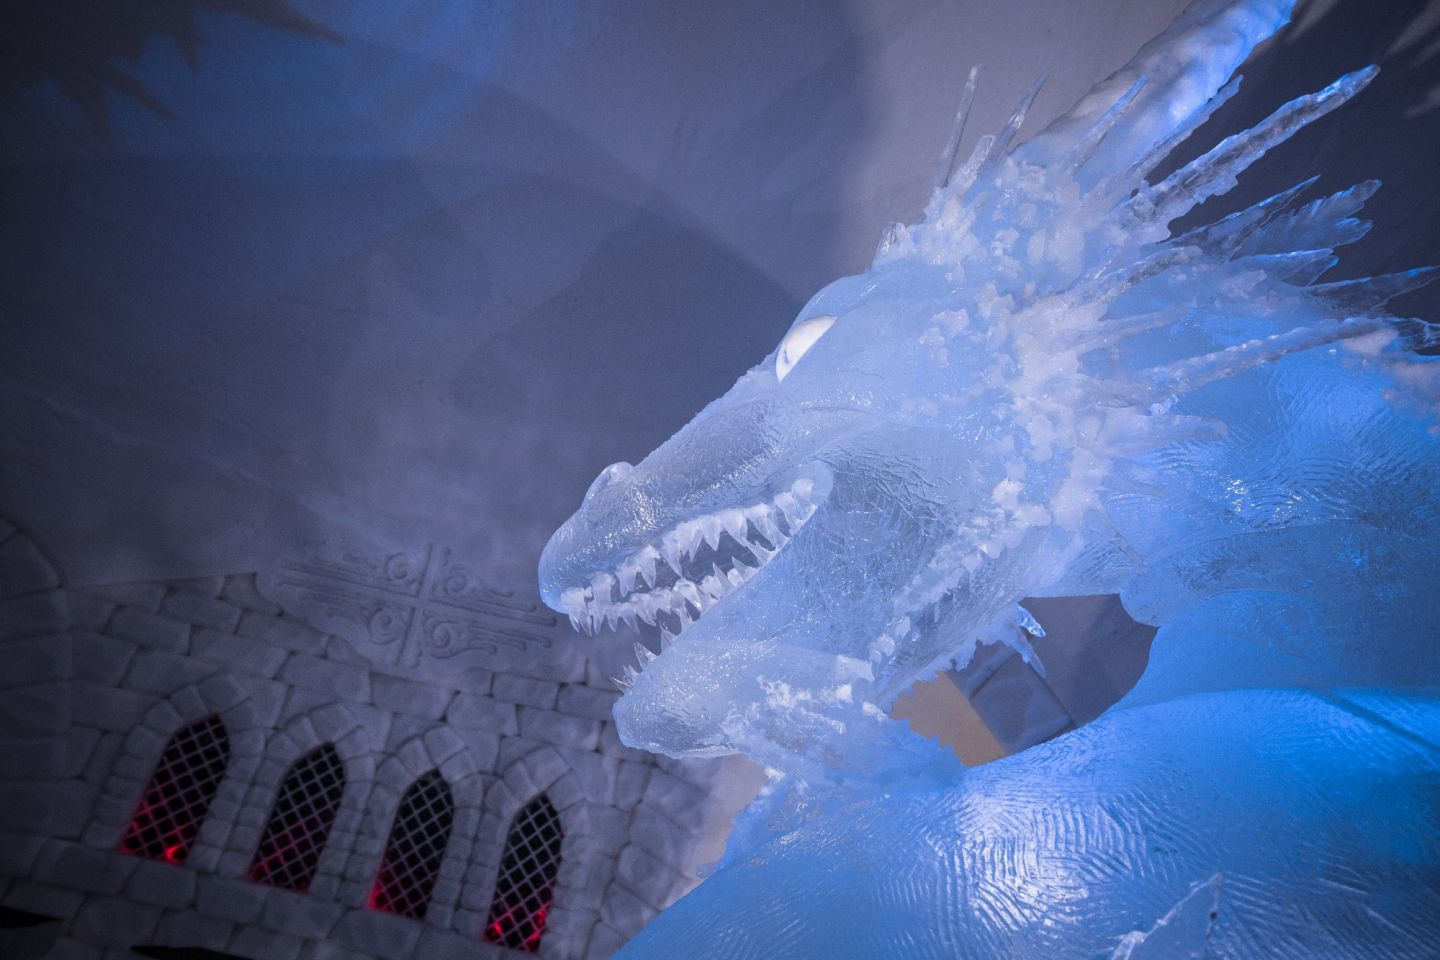 Game of Thrones Snowvillage dragon